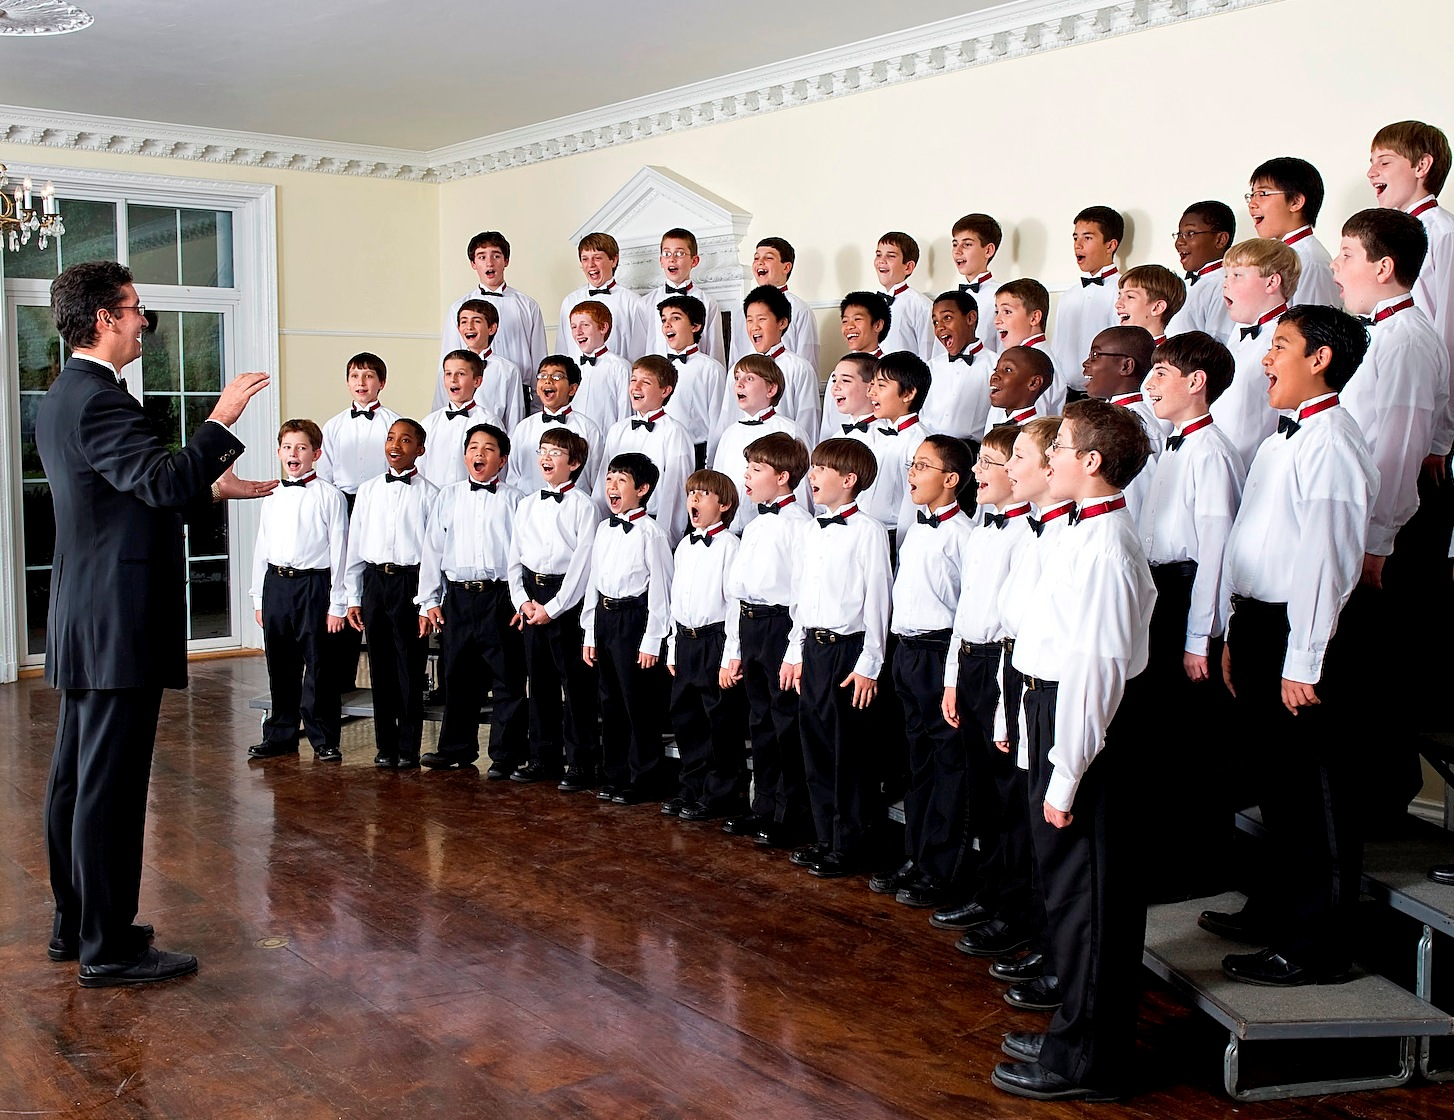 Downloading Ring Tones From The Vienna Choir Boys For Phones